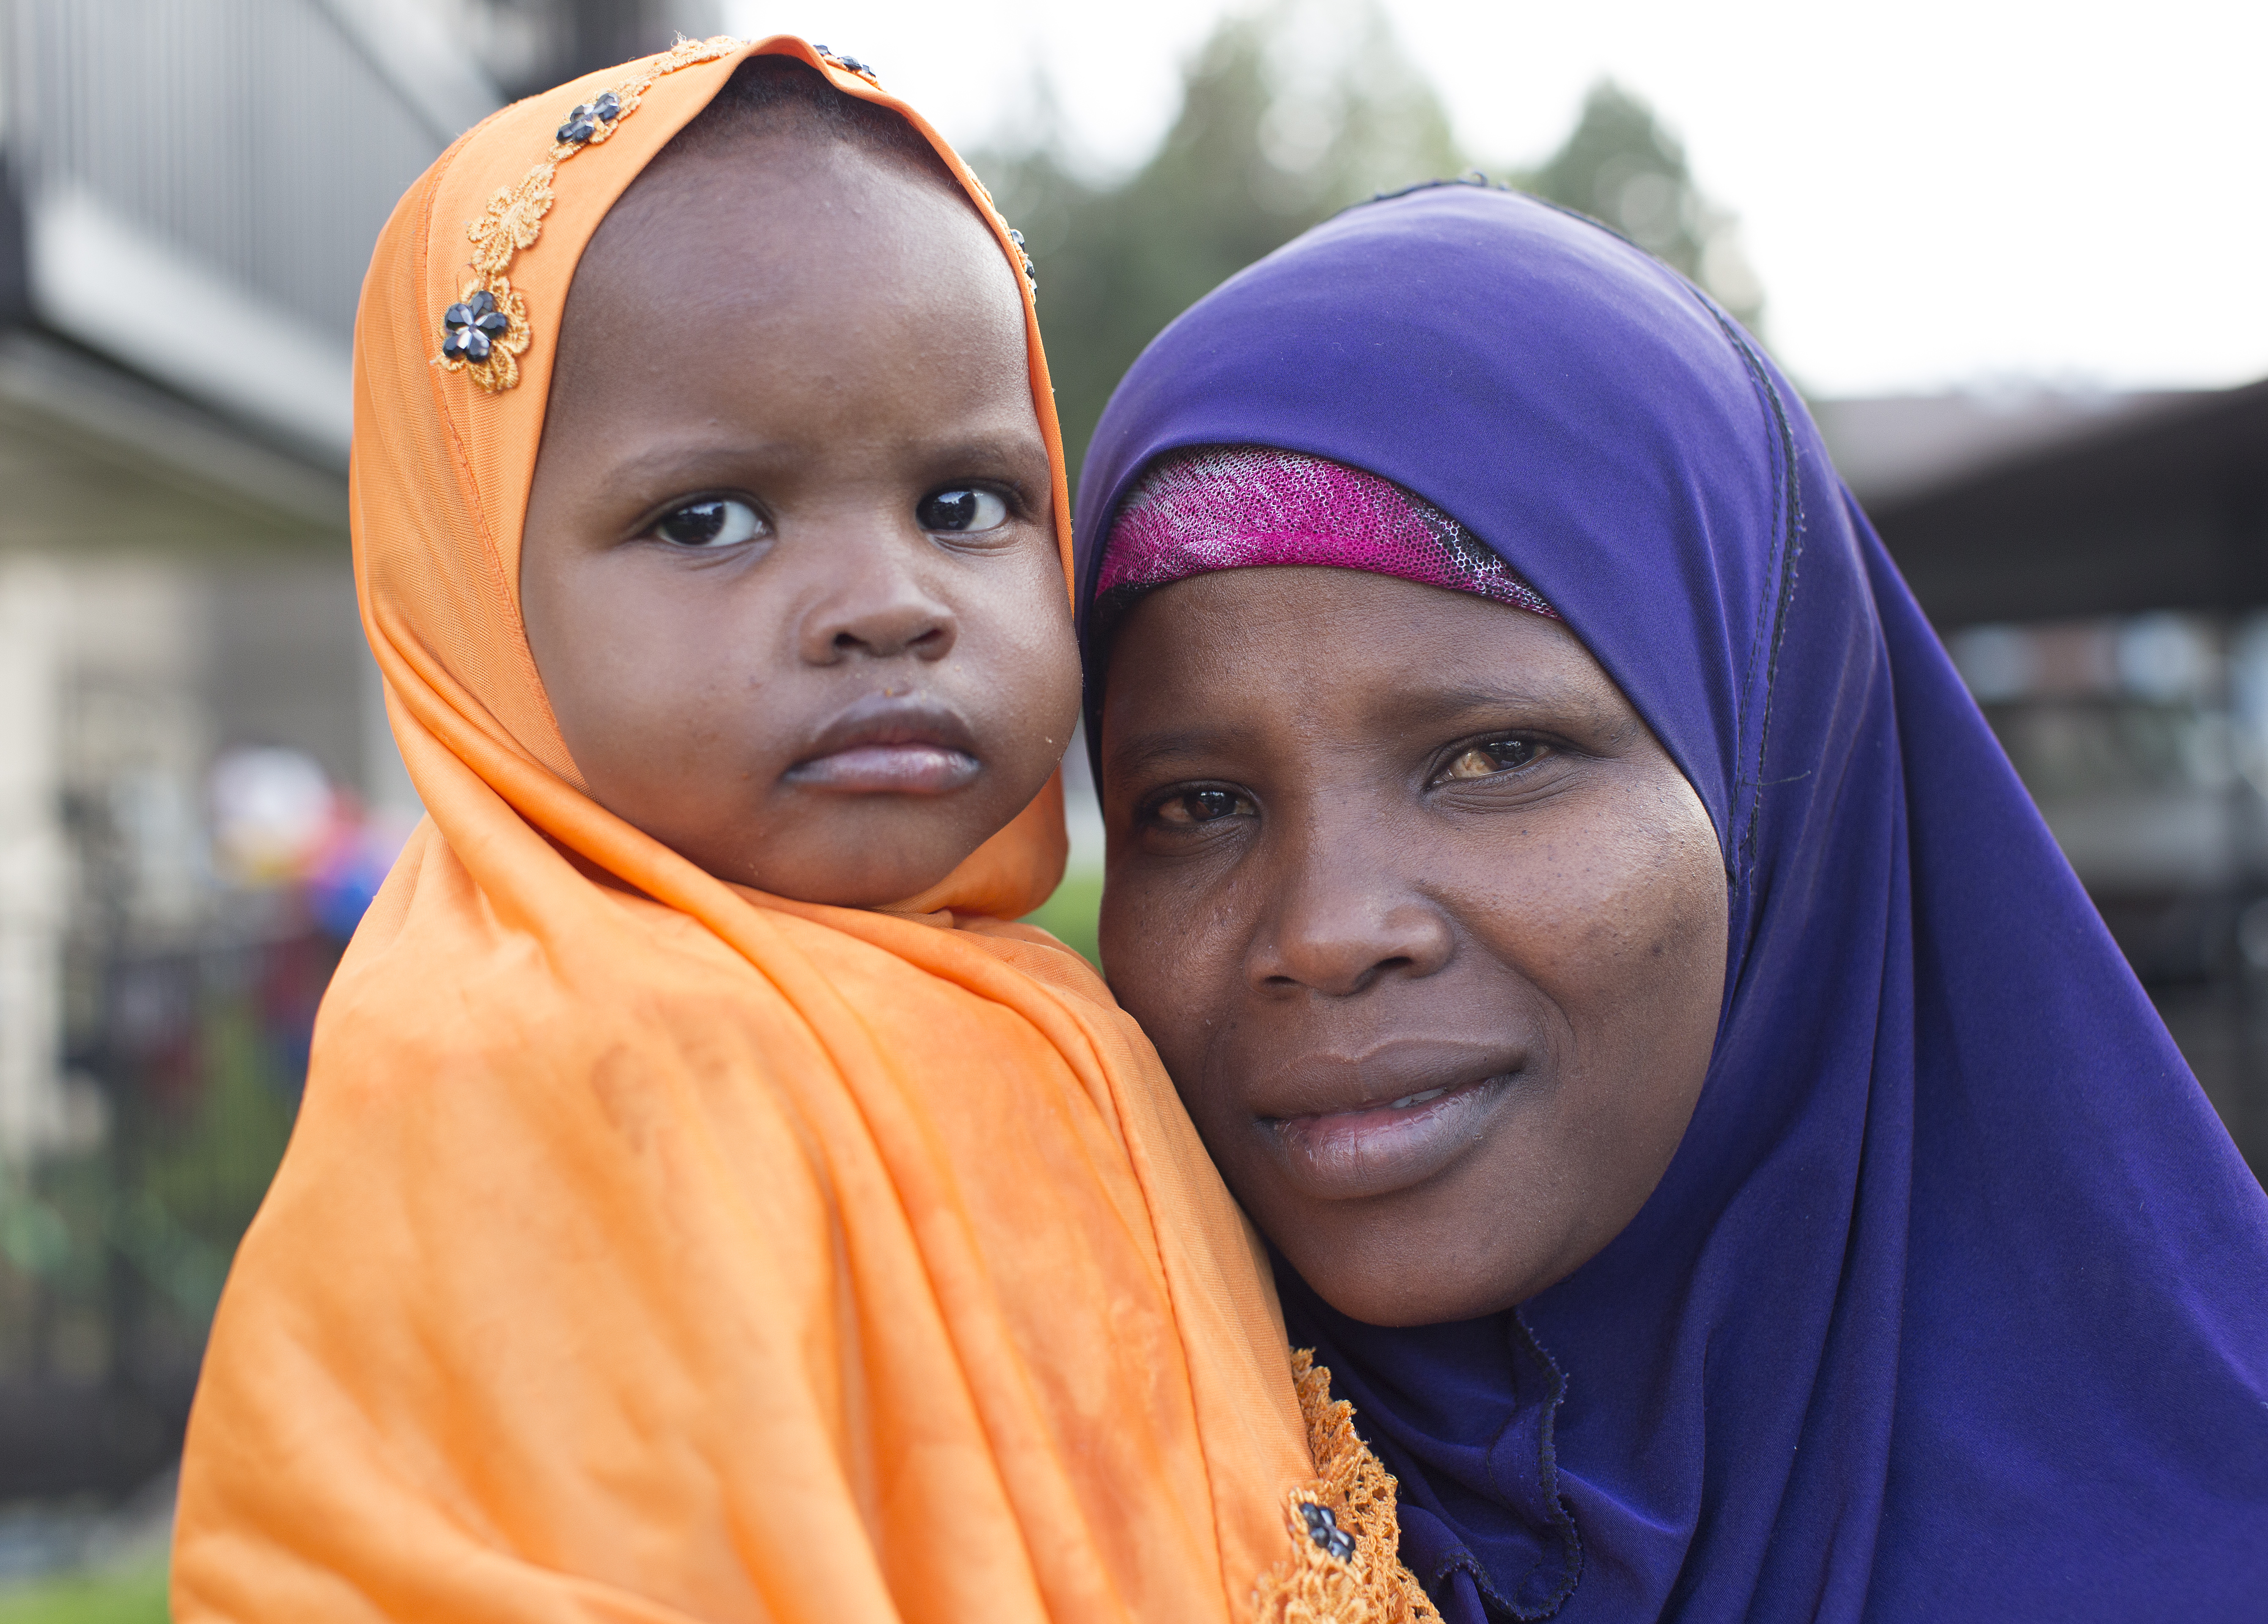 A mom and daughter like these are some of the refugees that Catholic Community Services assist in their adjustment process. Provo's 5K race for refugees hopes to raise money to donate to local refugee organizations.